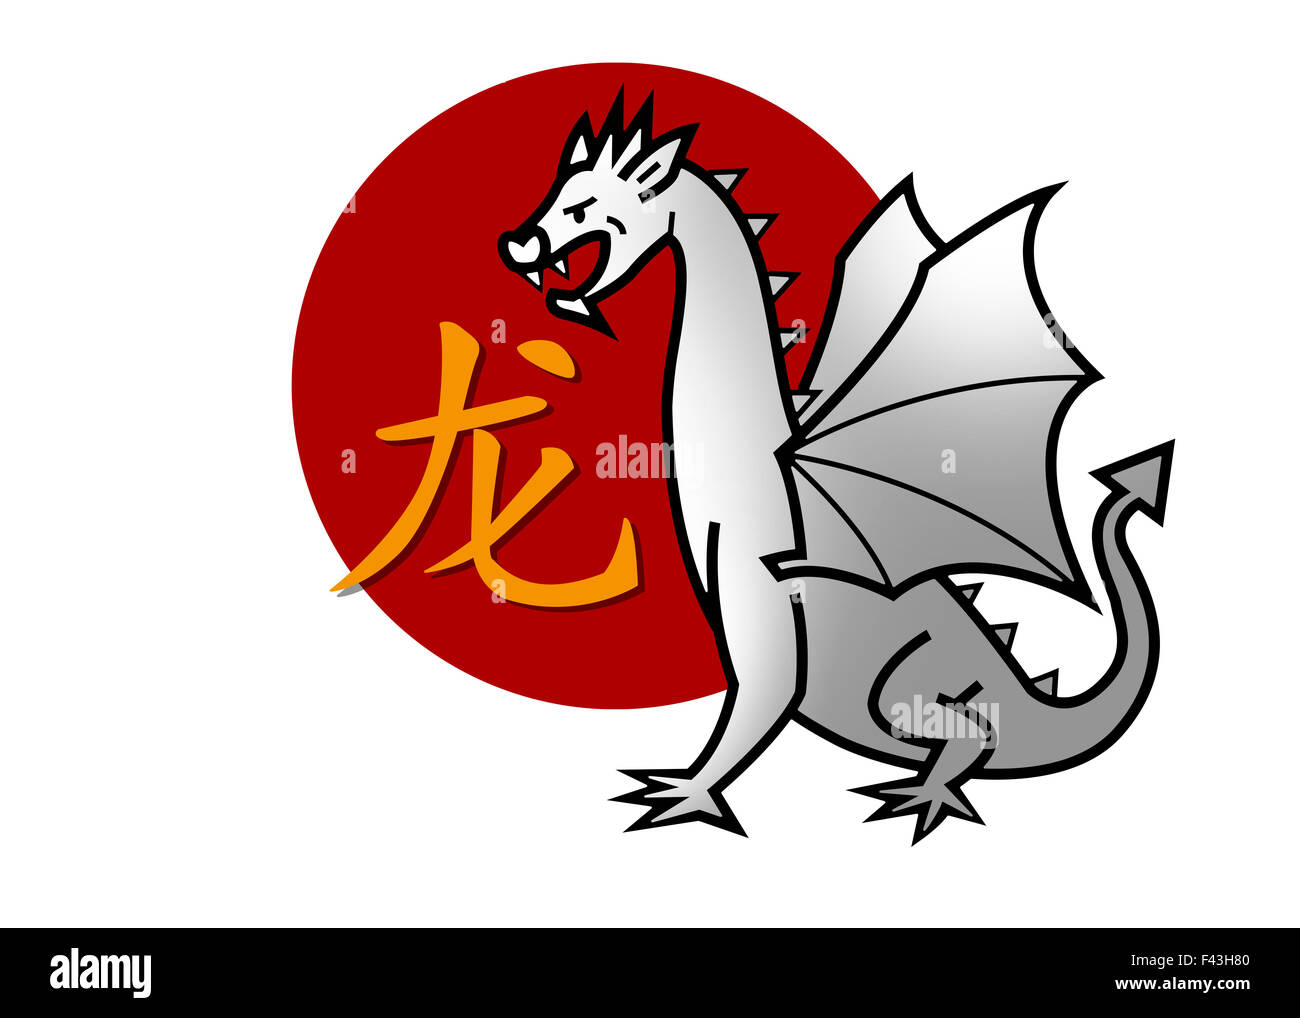 Chinese zodiac sign for year of the dragon Stock Photo